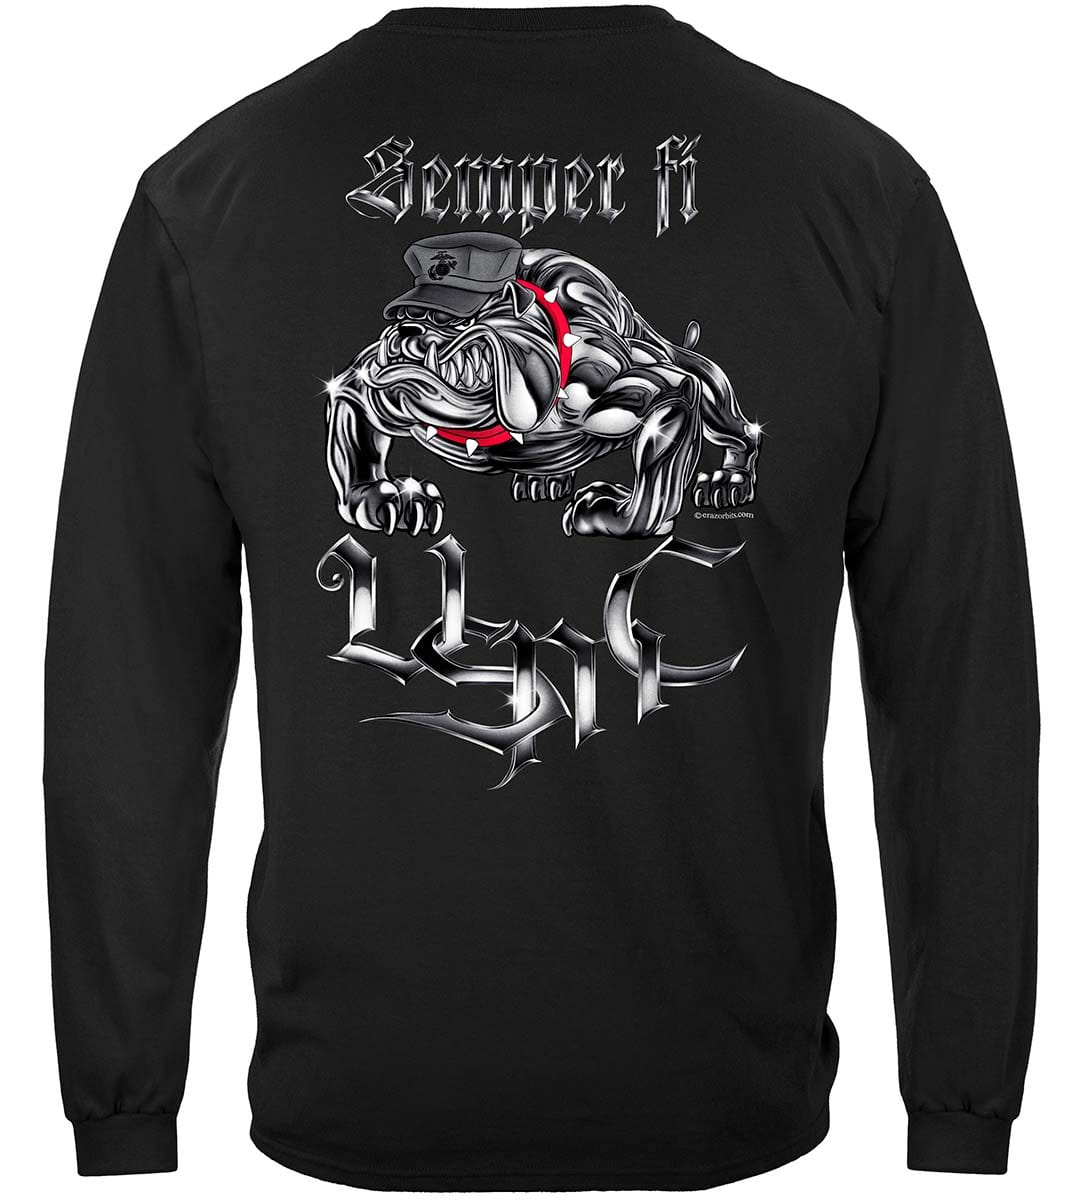 Semper Fi Chrome Dog Marine Corps Premium Long Sleeves